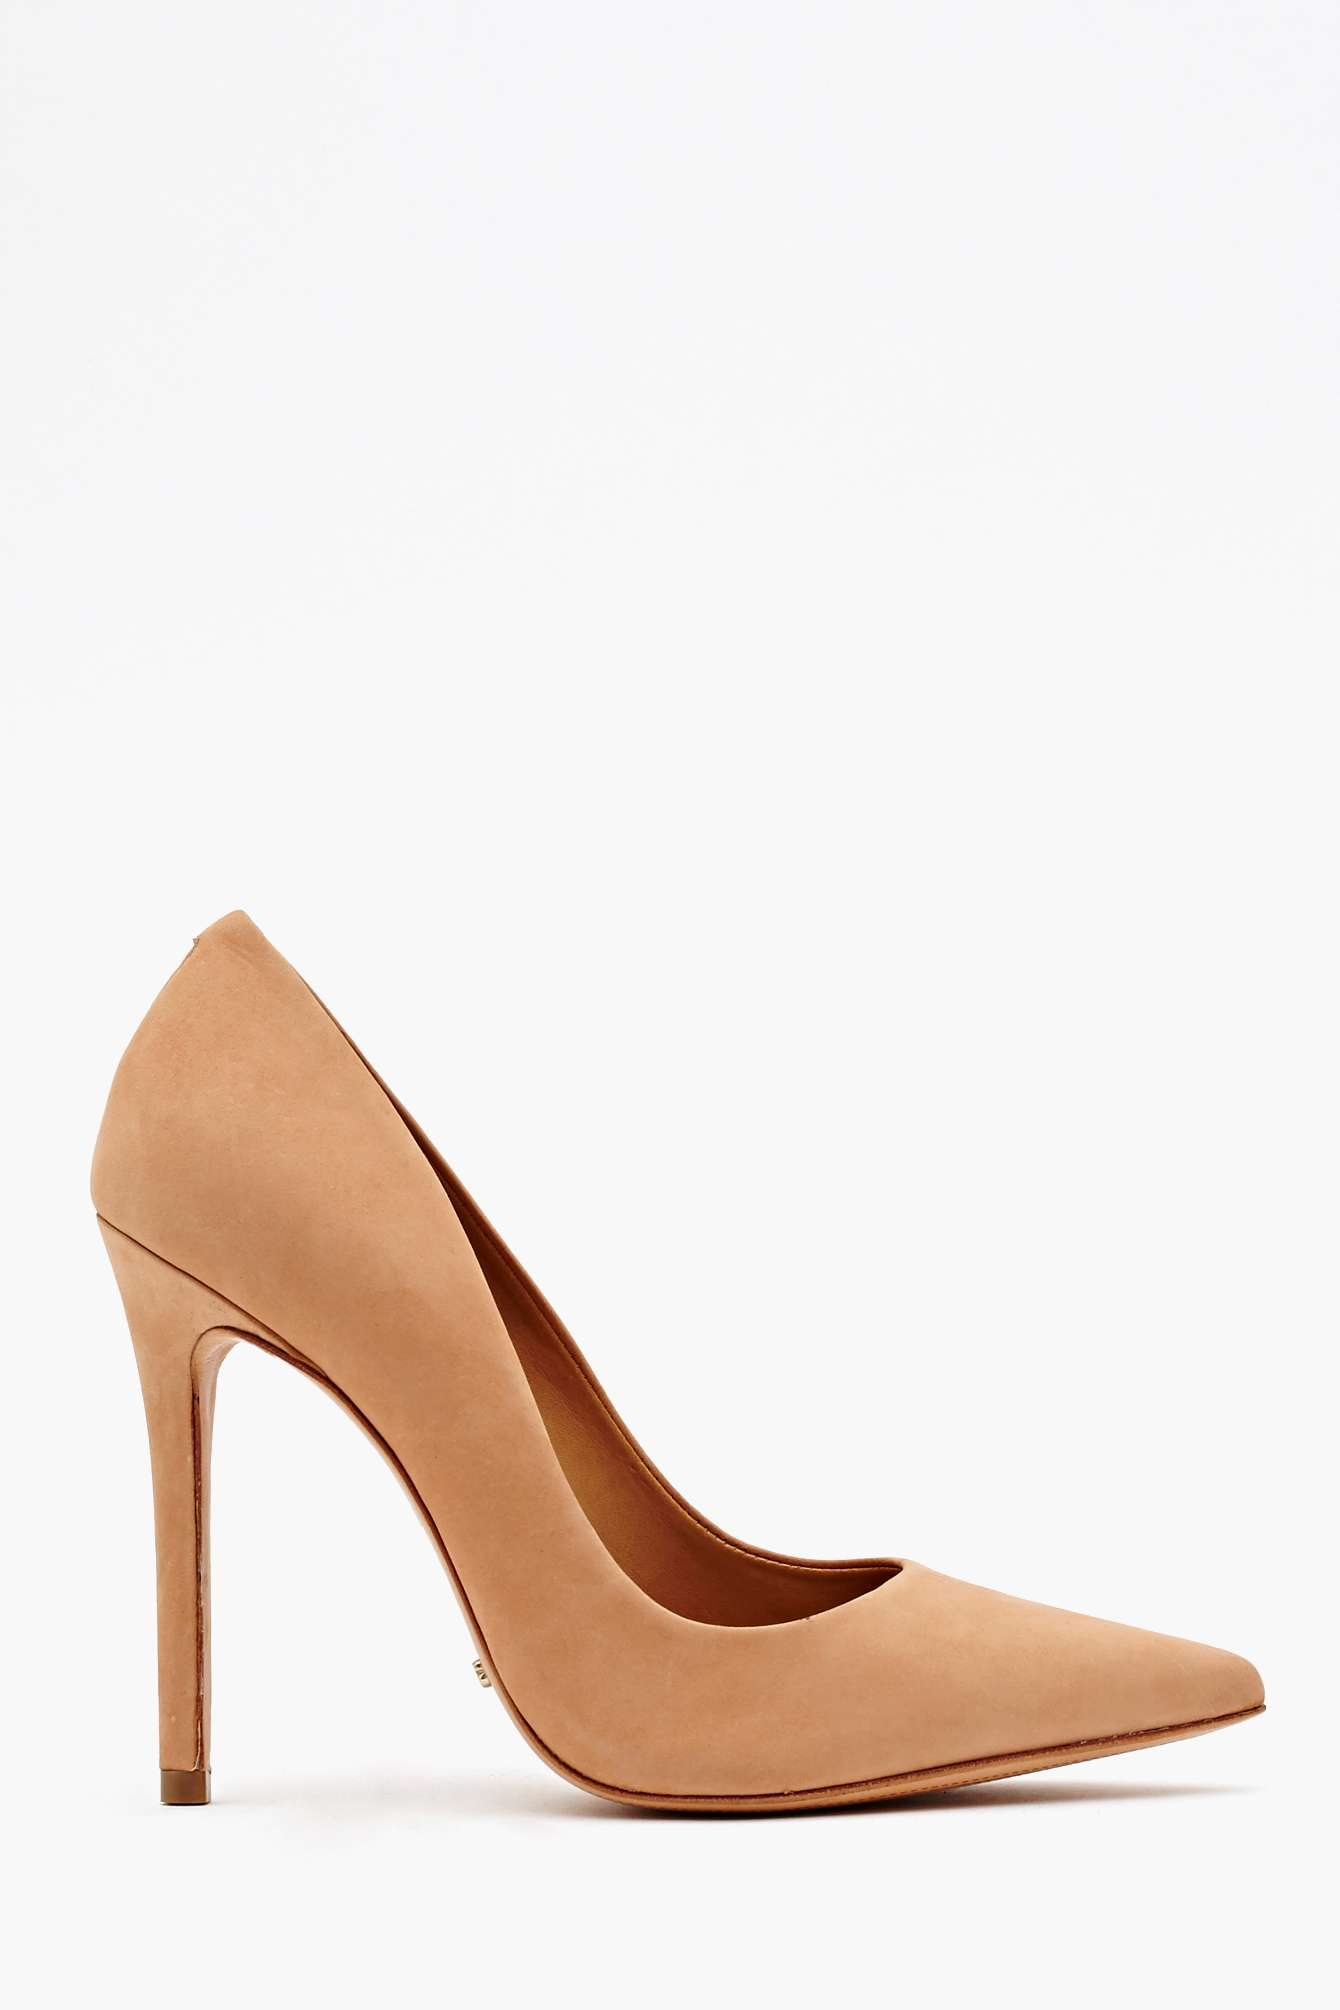 Lyst - Nasty Gal Libertine Pump Nude In Natural-3818